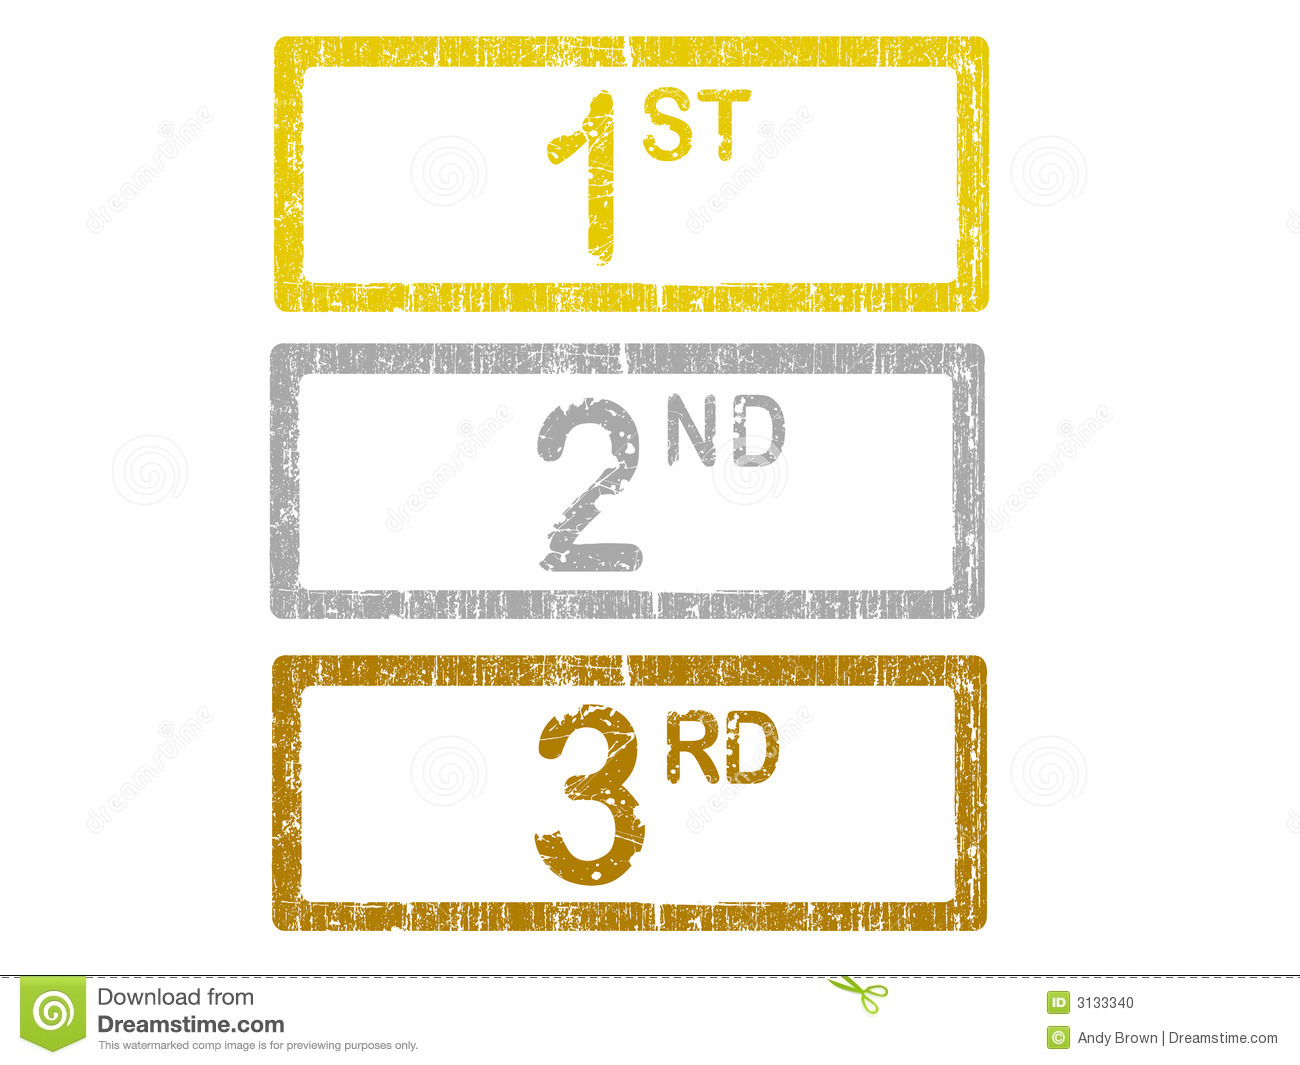 2nd place stock vector illustration royalty free 2nd place clipart - 1st 2nd And 3rd Stock Photo Image 3133340